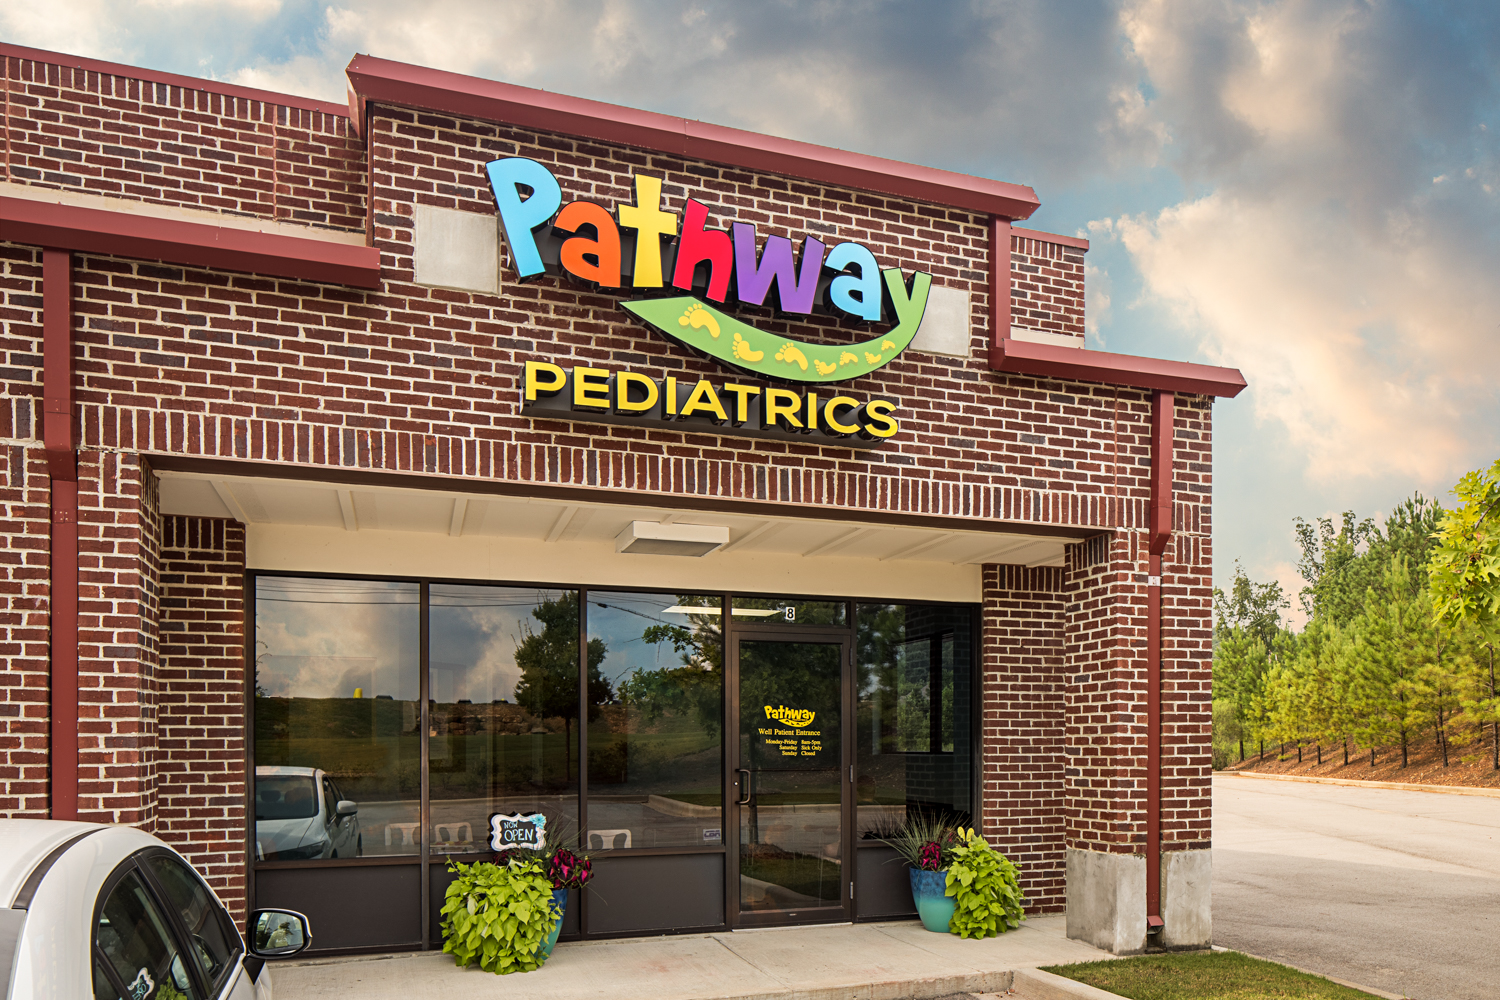 Pathway Pediatrics - Birmingham AL Commercial Photography0582.jpg